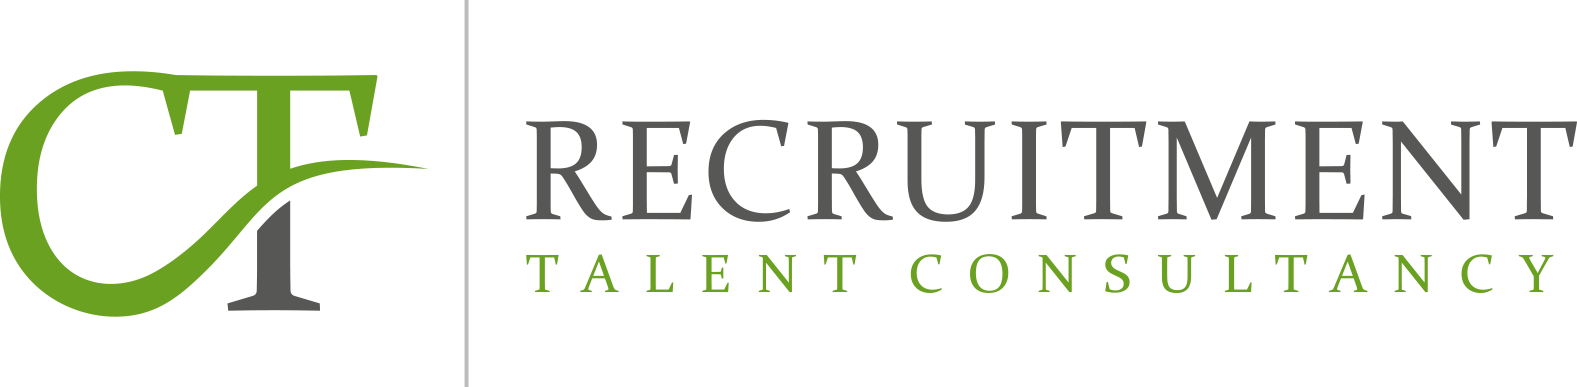 CT recruitment logo